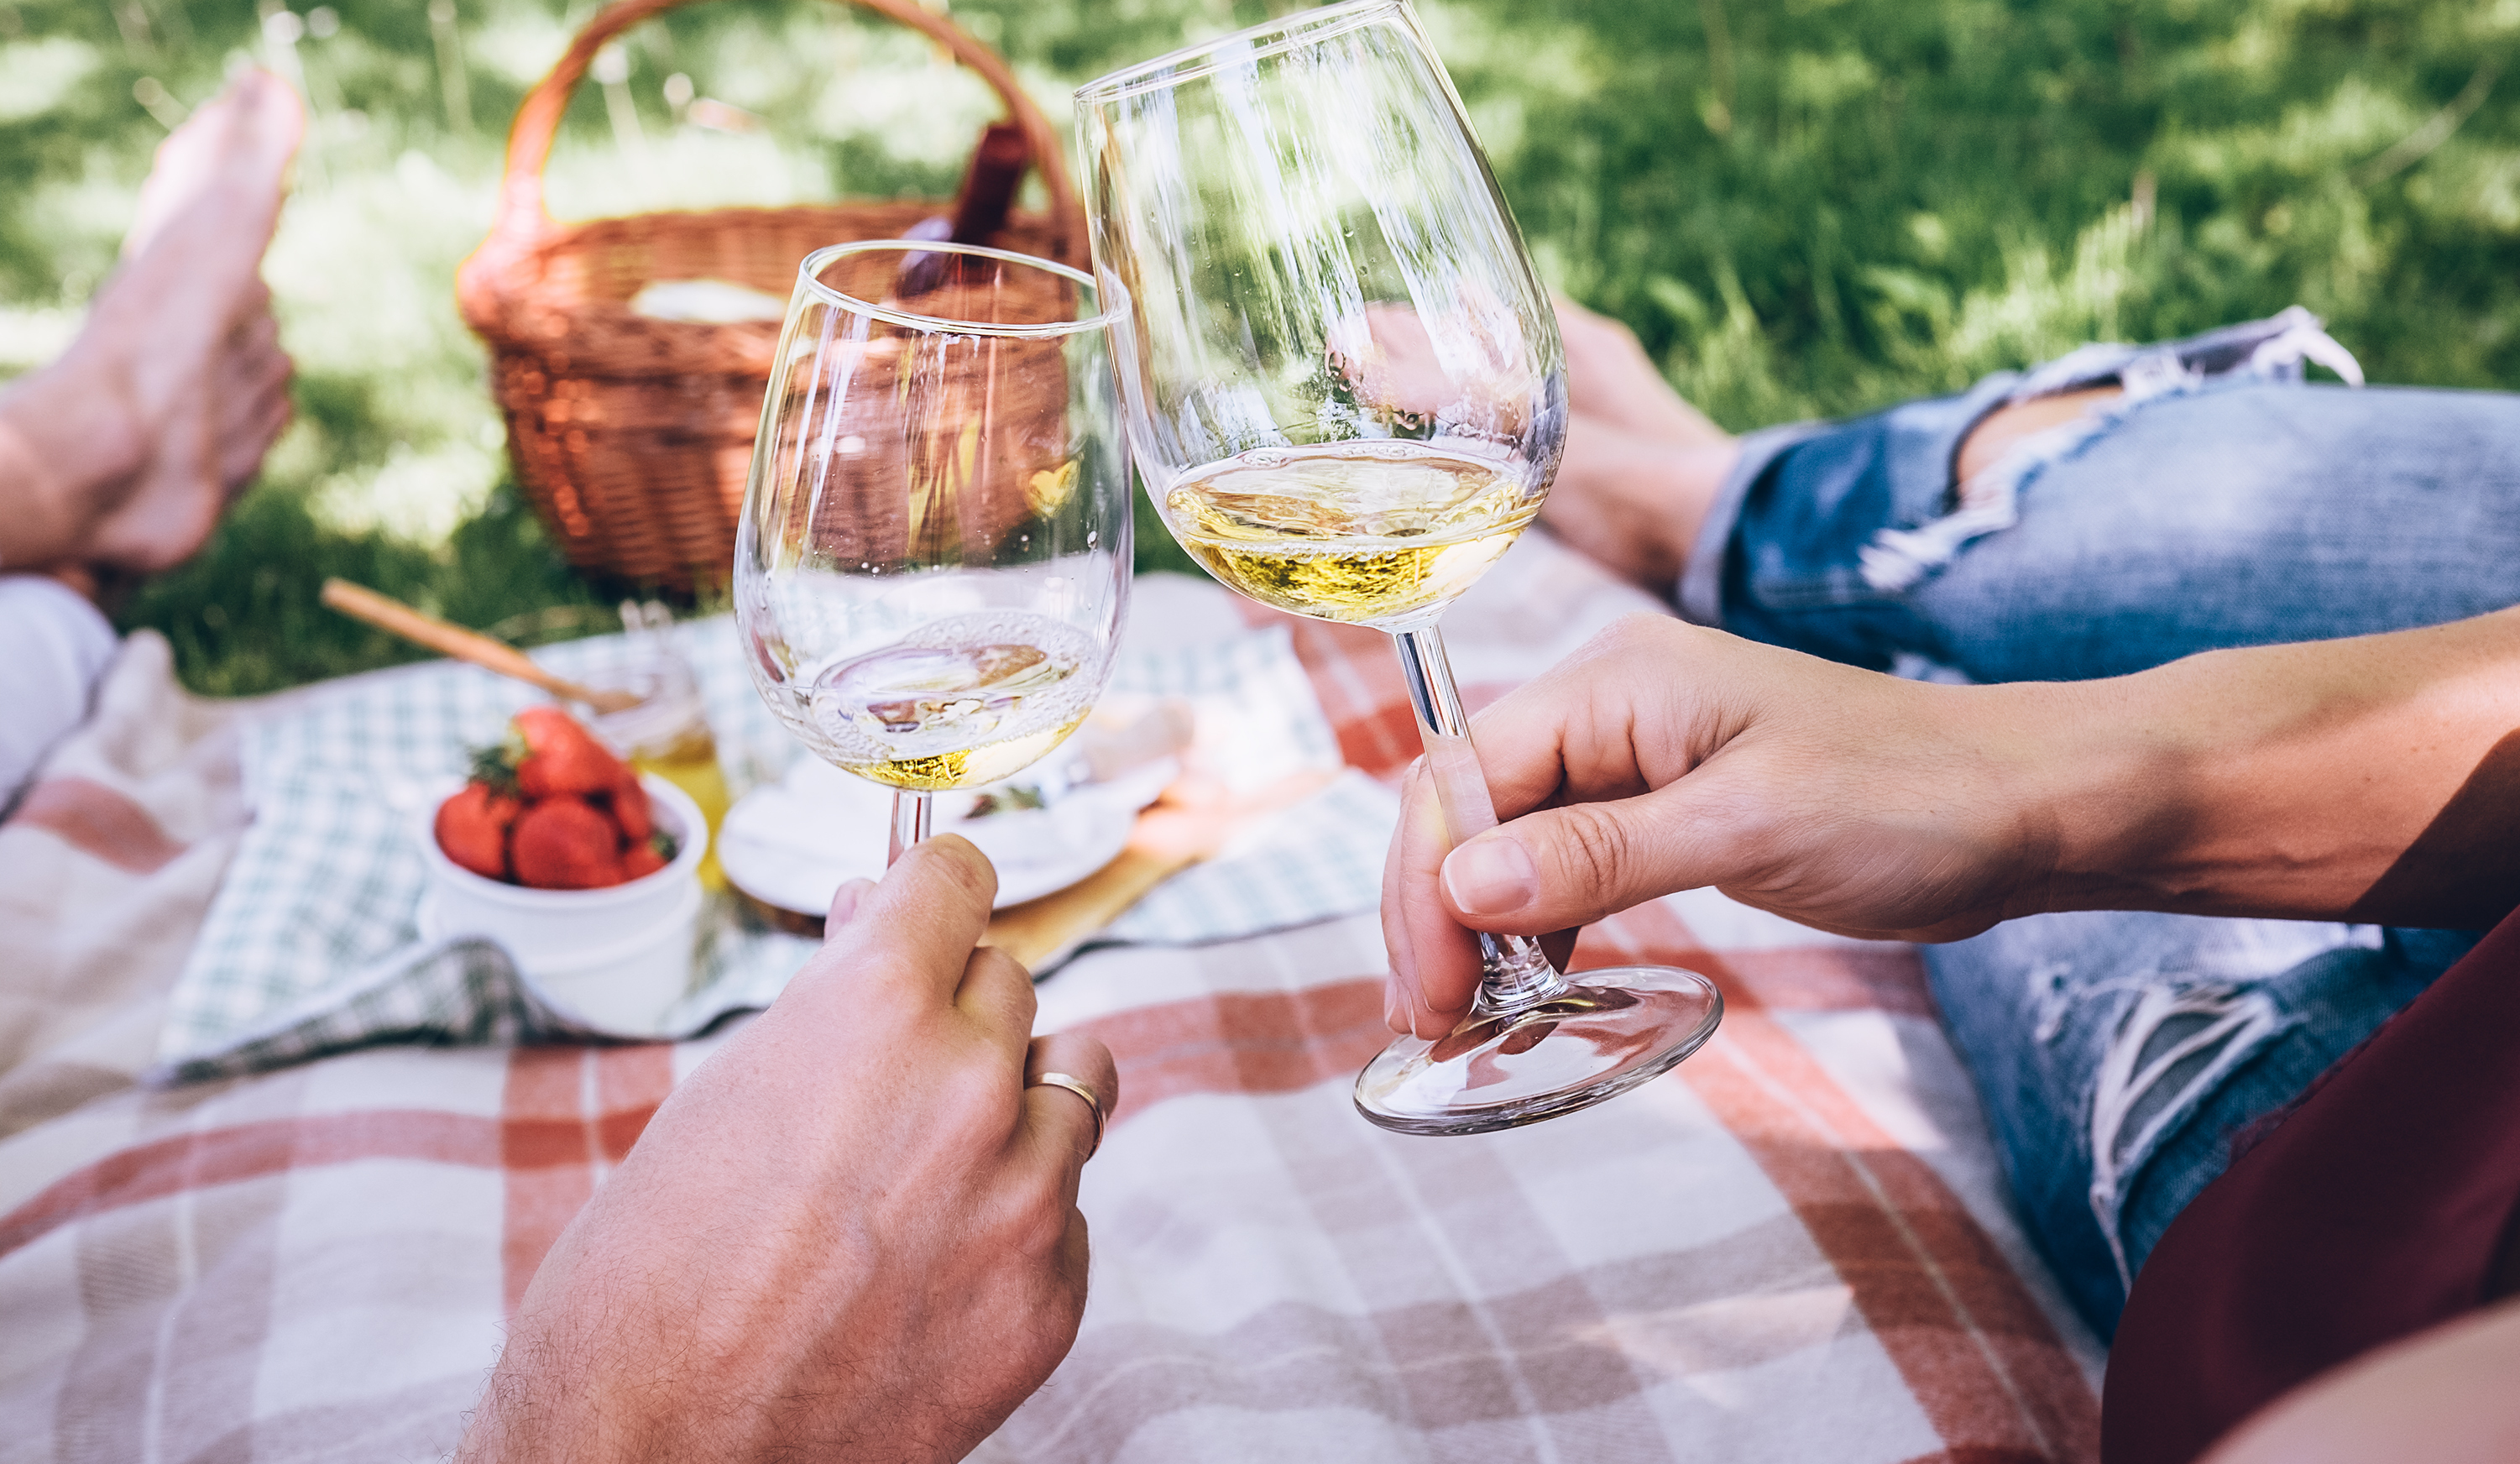 People clinking wine glasses over a picnic blanket.